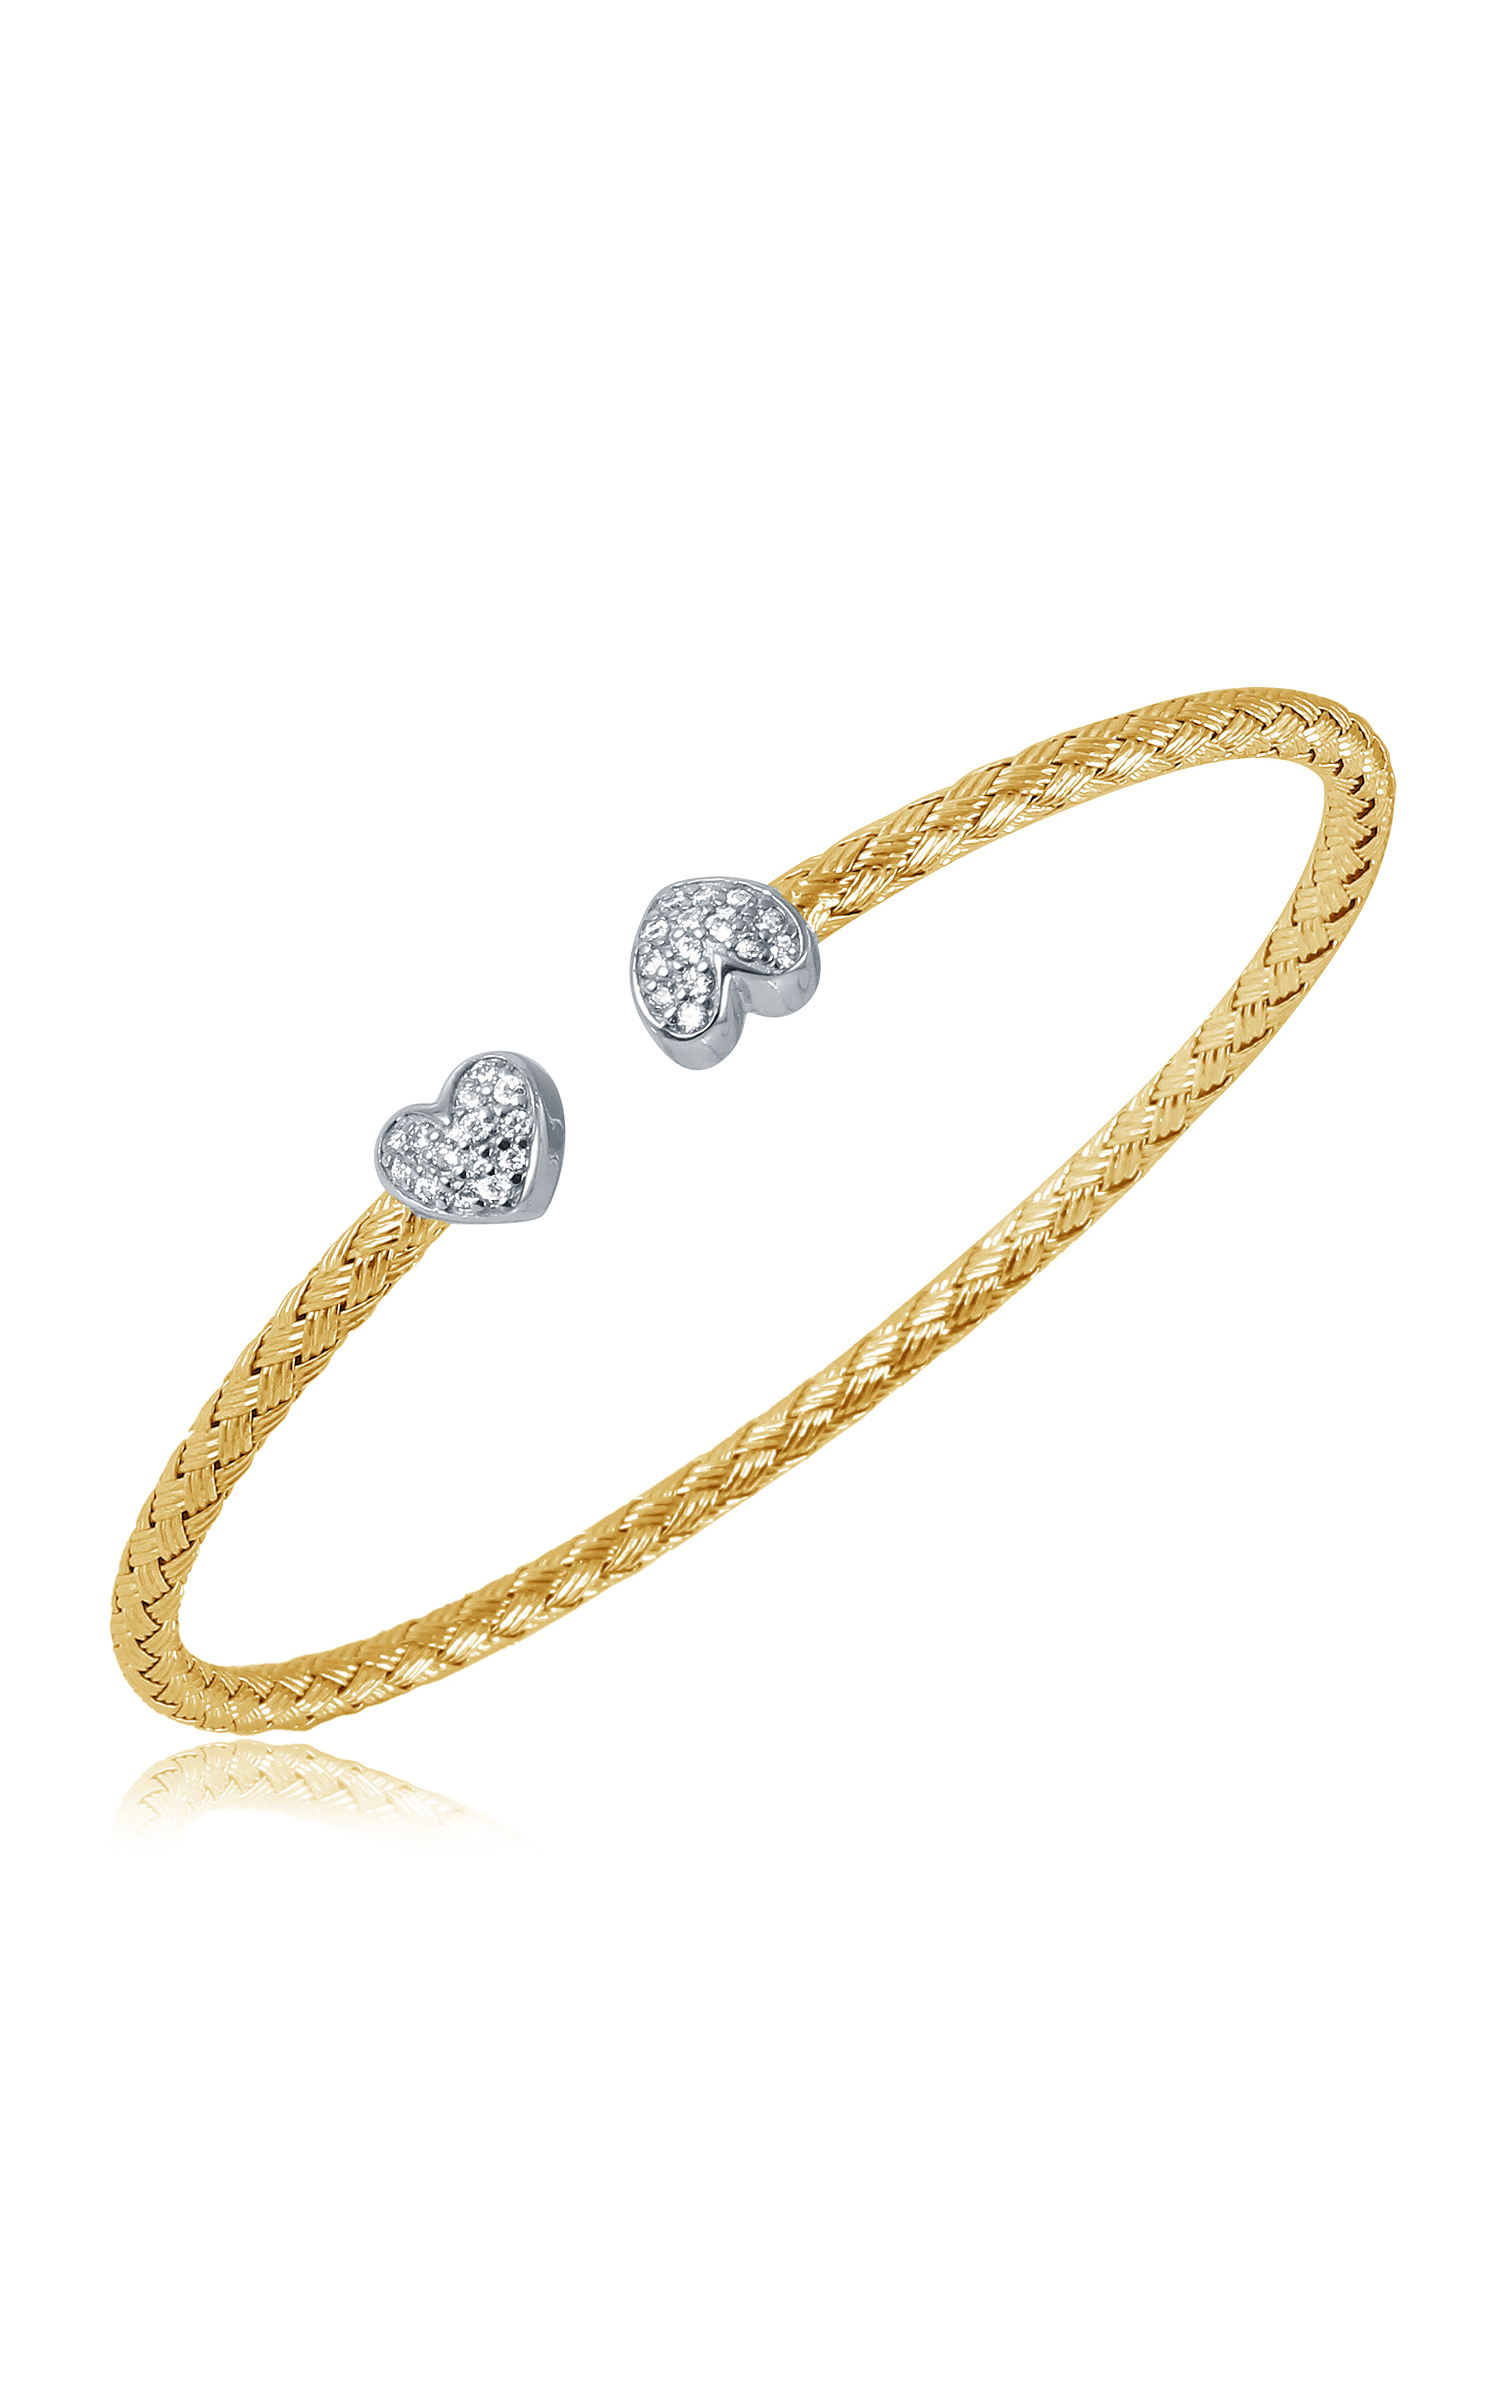 Charles Garnier Paolo Collection Bracelet MLC8213YWZ product image